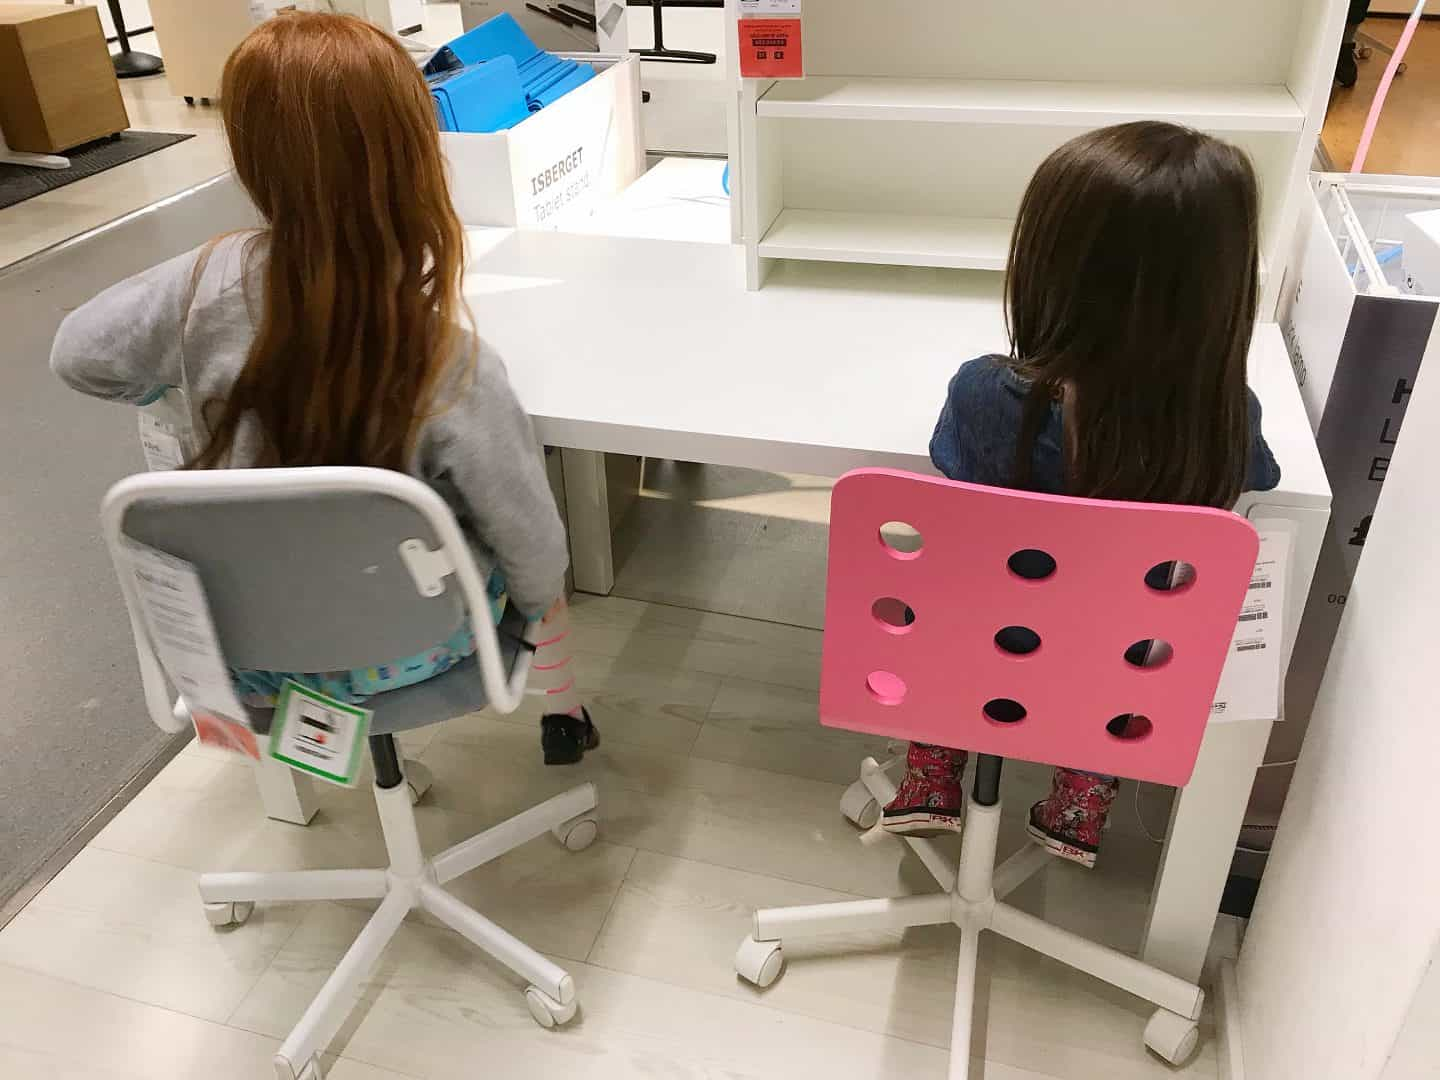 Ikea Pahl Desk with two chairs